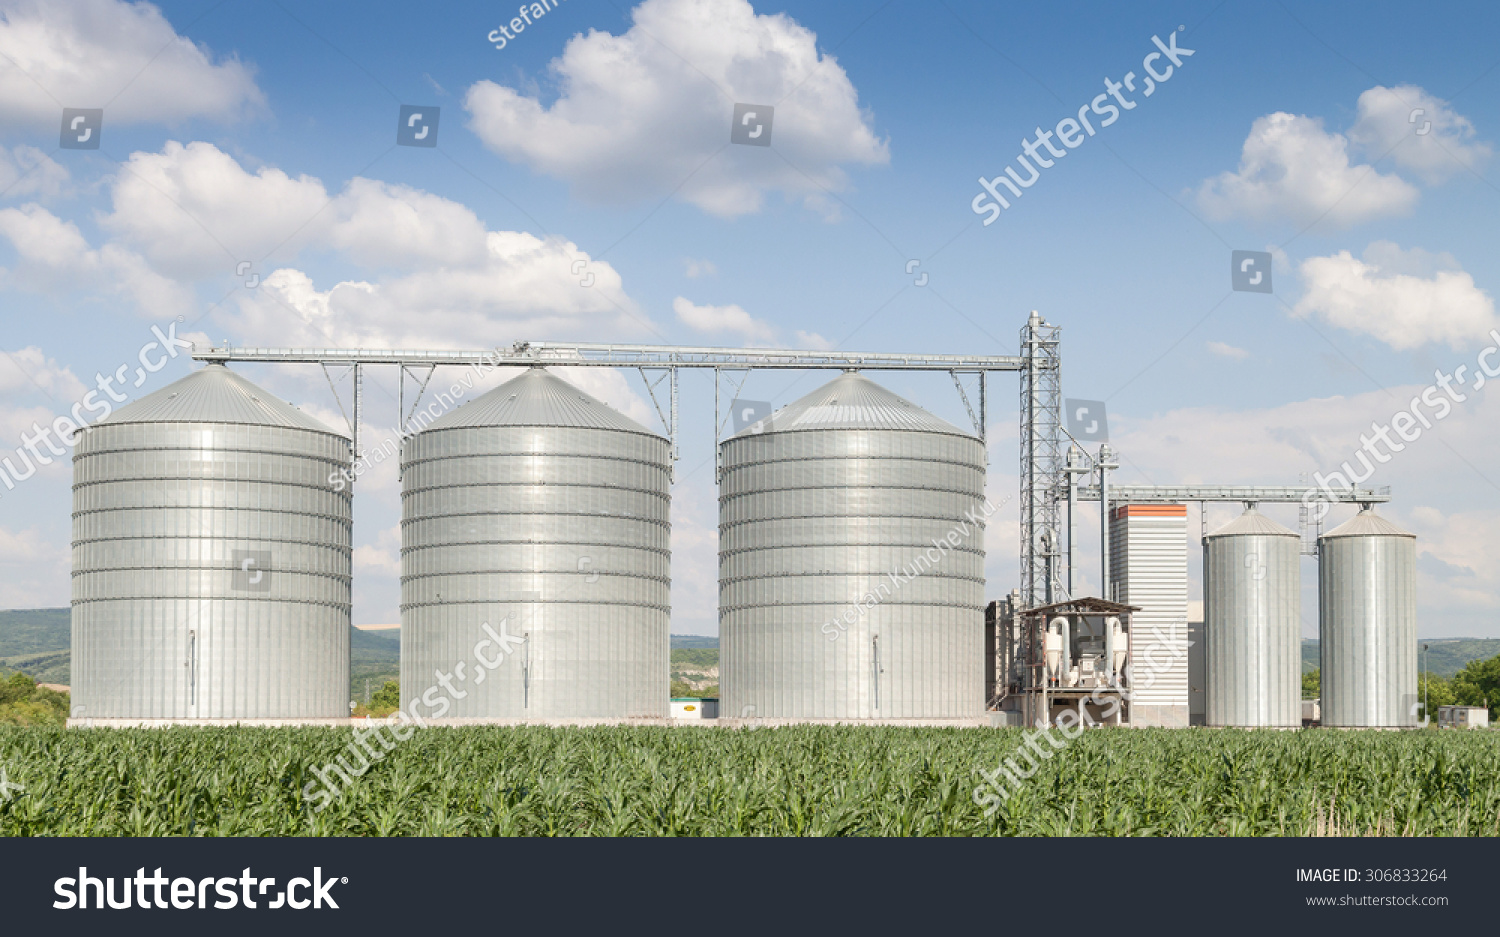 agricultural silo building exterior storage and drying